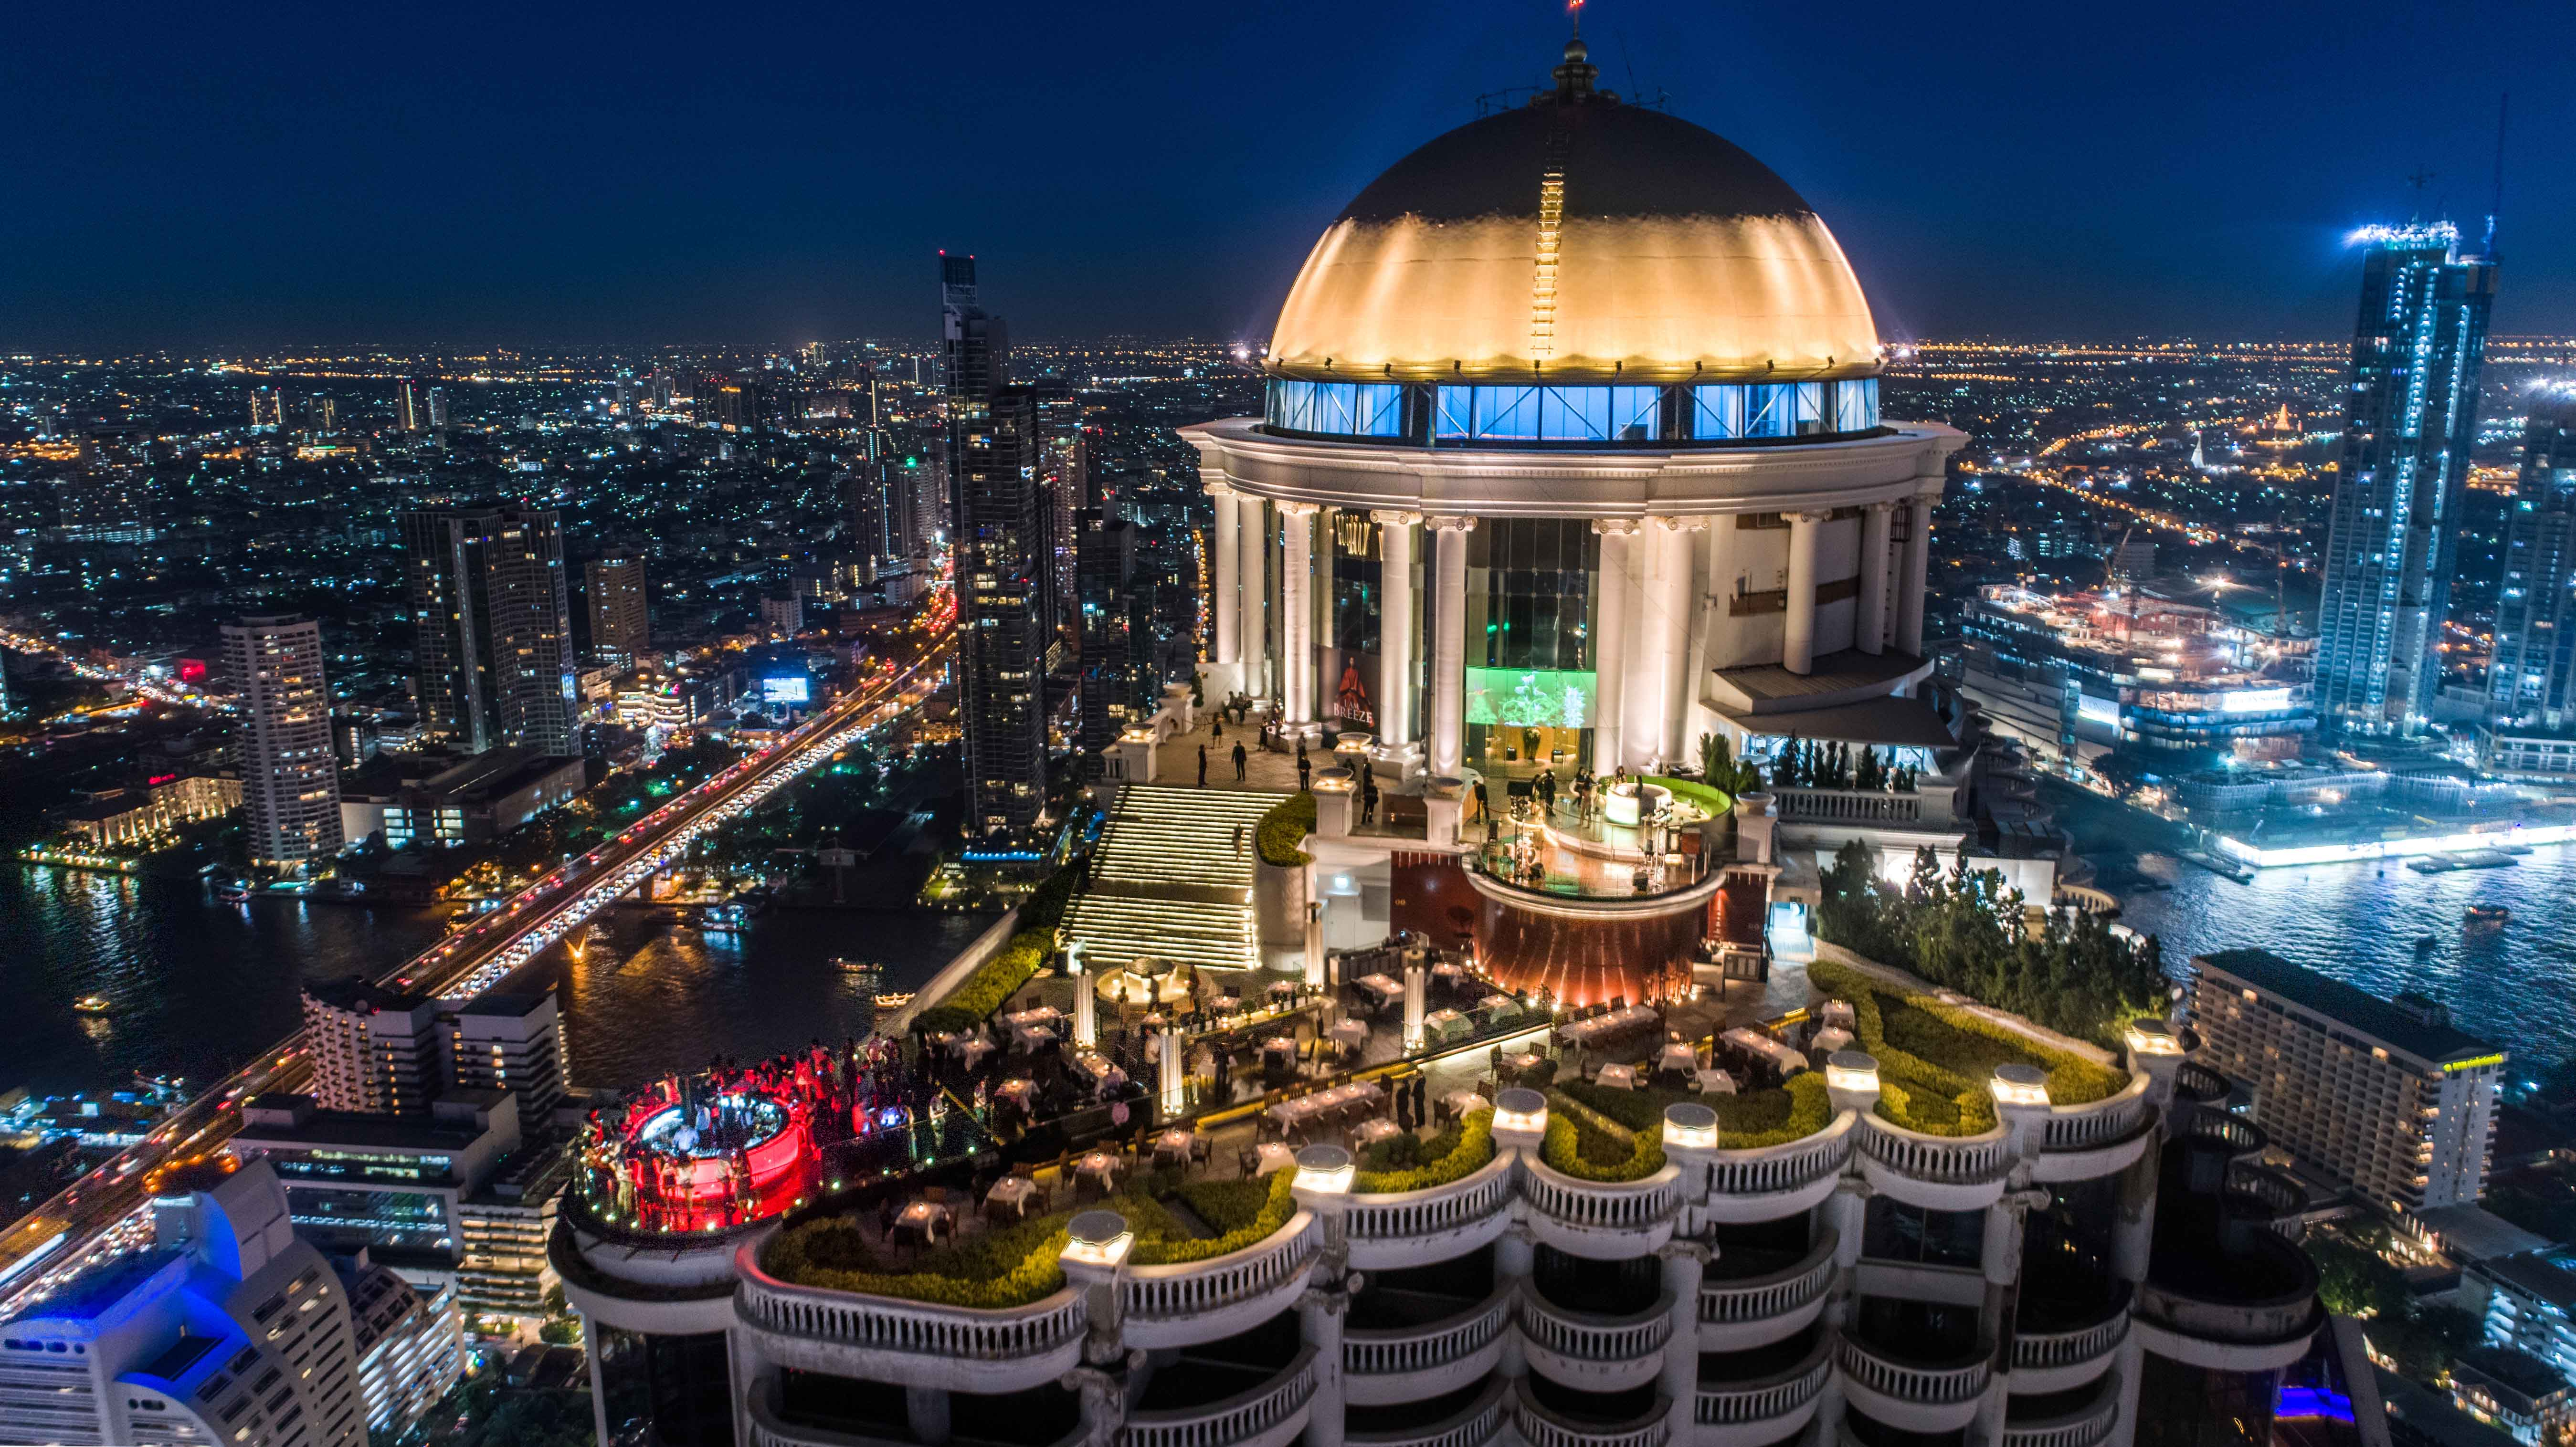 lebua rooftop at night from afar surrounded by city lights